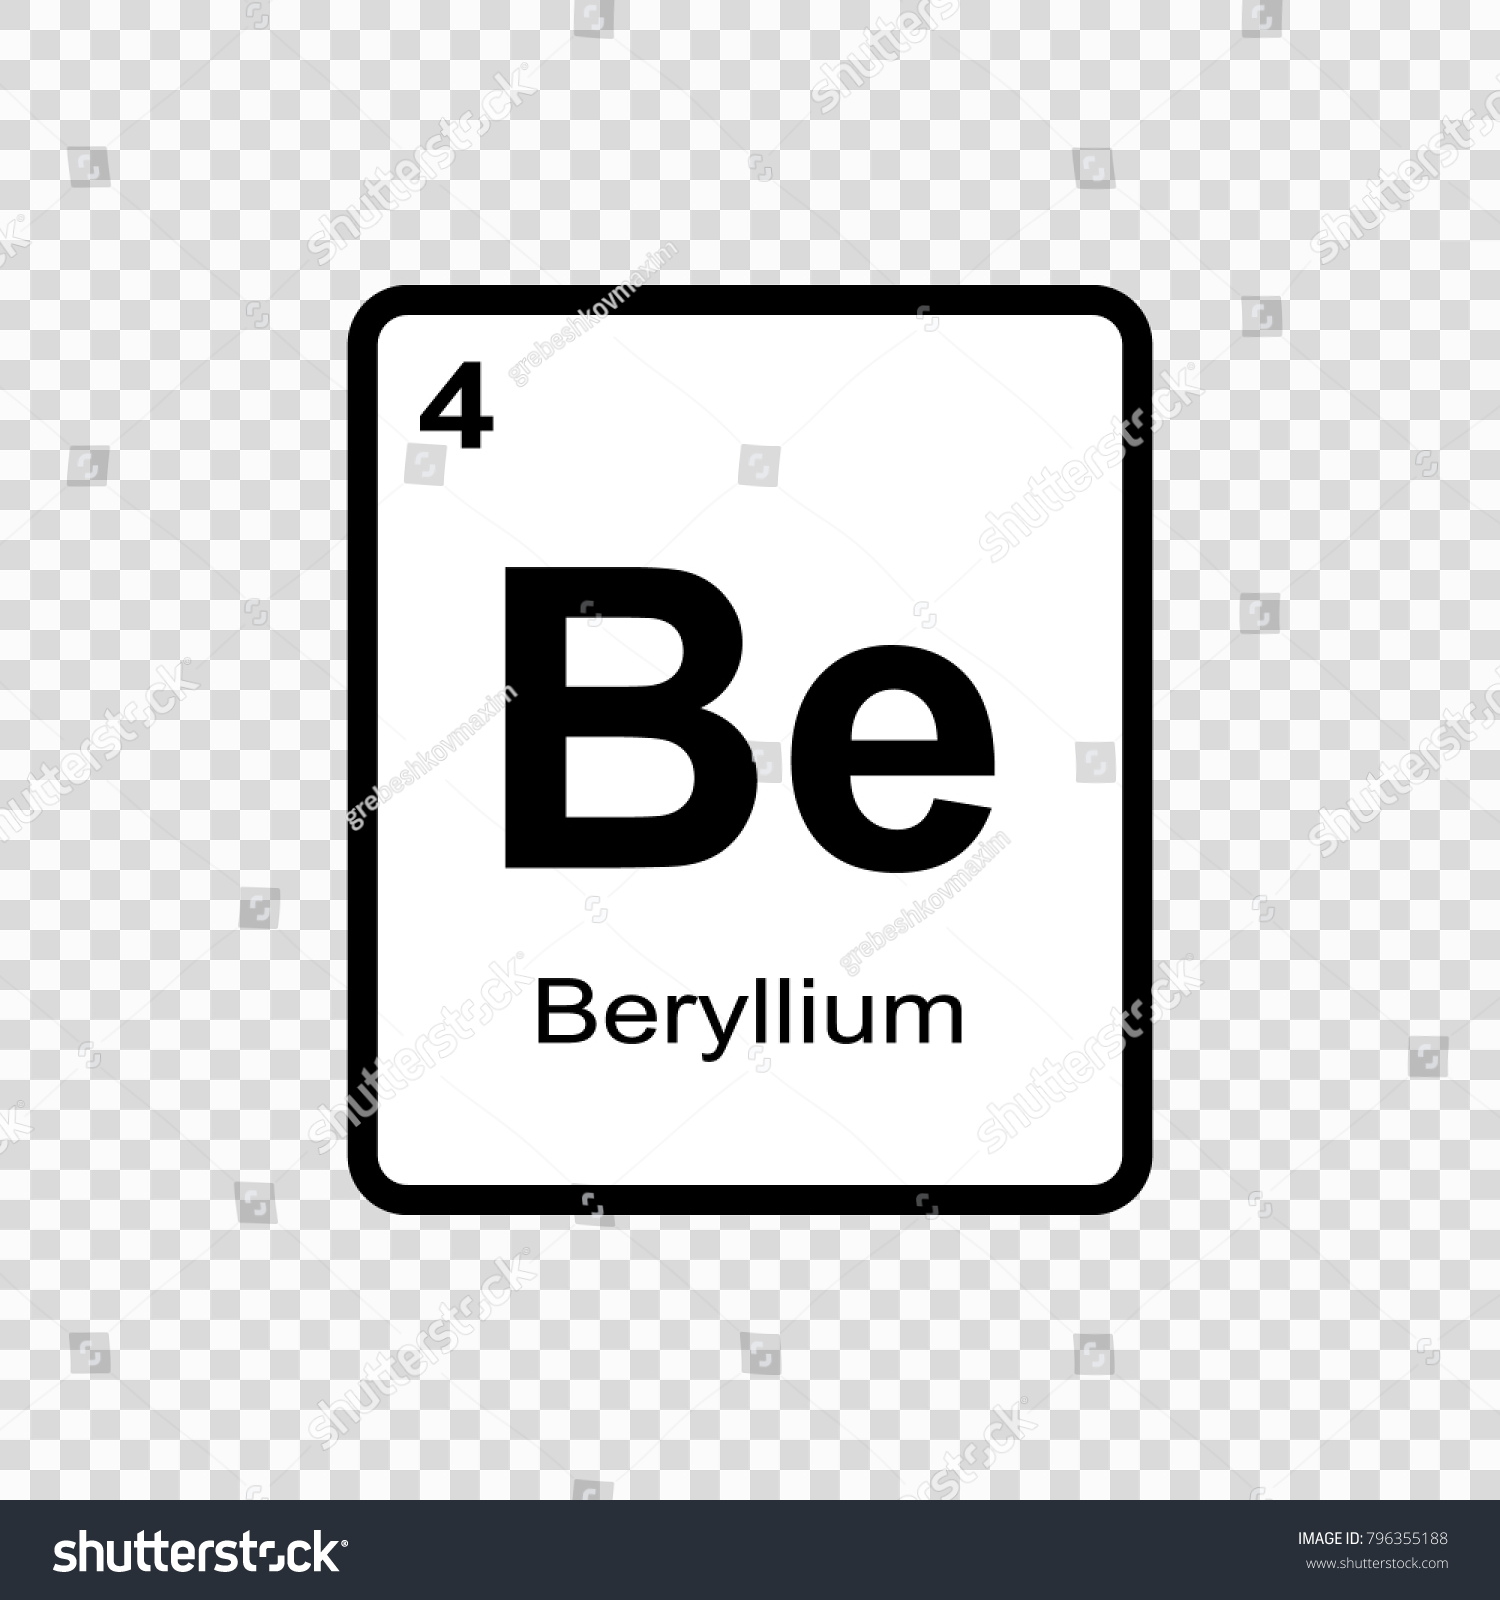 Beryllium chemical element sign atomic number stock vector beryllium chemical element sign with atomic number chemical element of periodic table buycottarizona Image collections